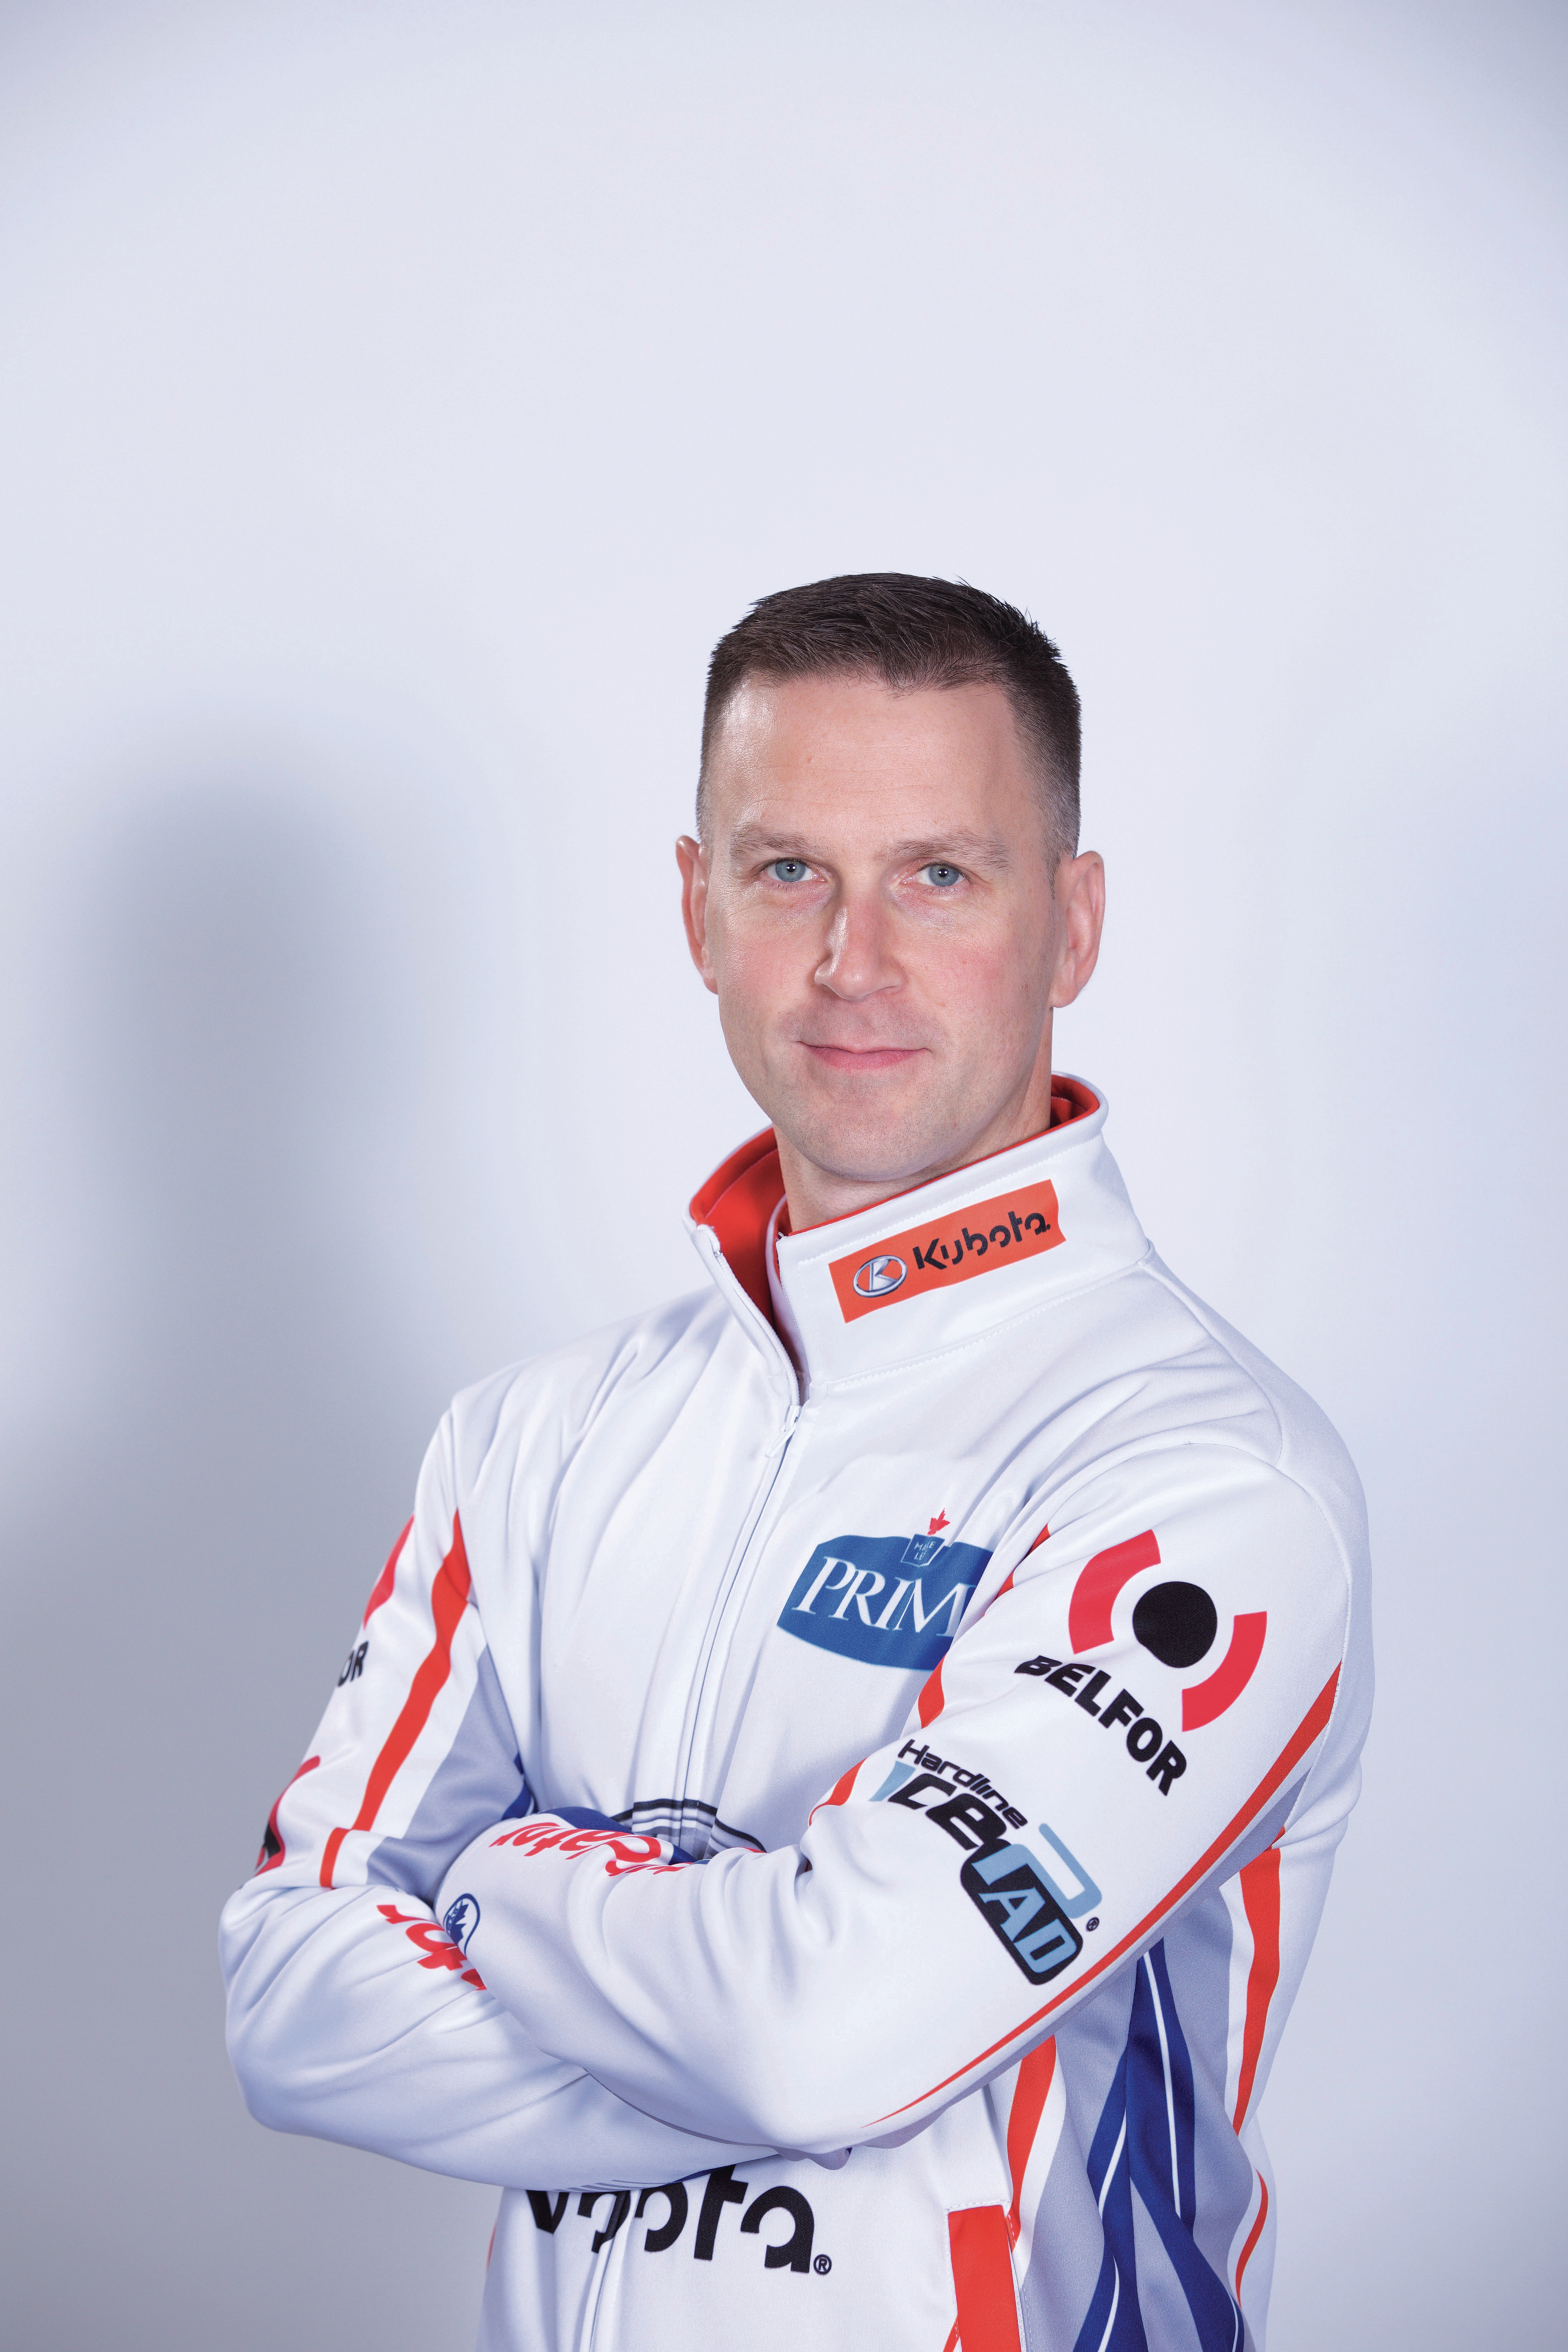 For curler Gushue, experience competing on a team has been hugely helpful in his MBA studies (Courtesy of Anil Mungal/Team Gushue)